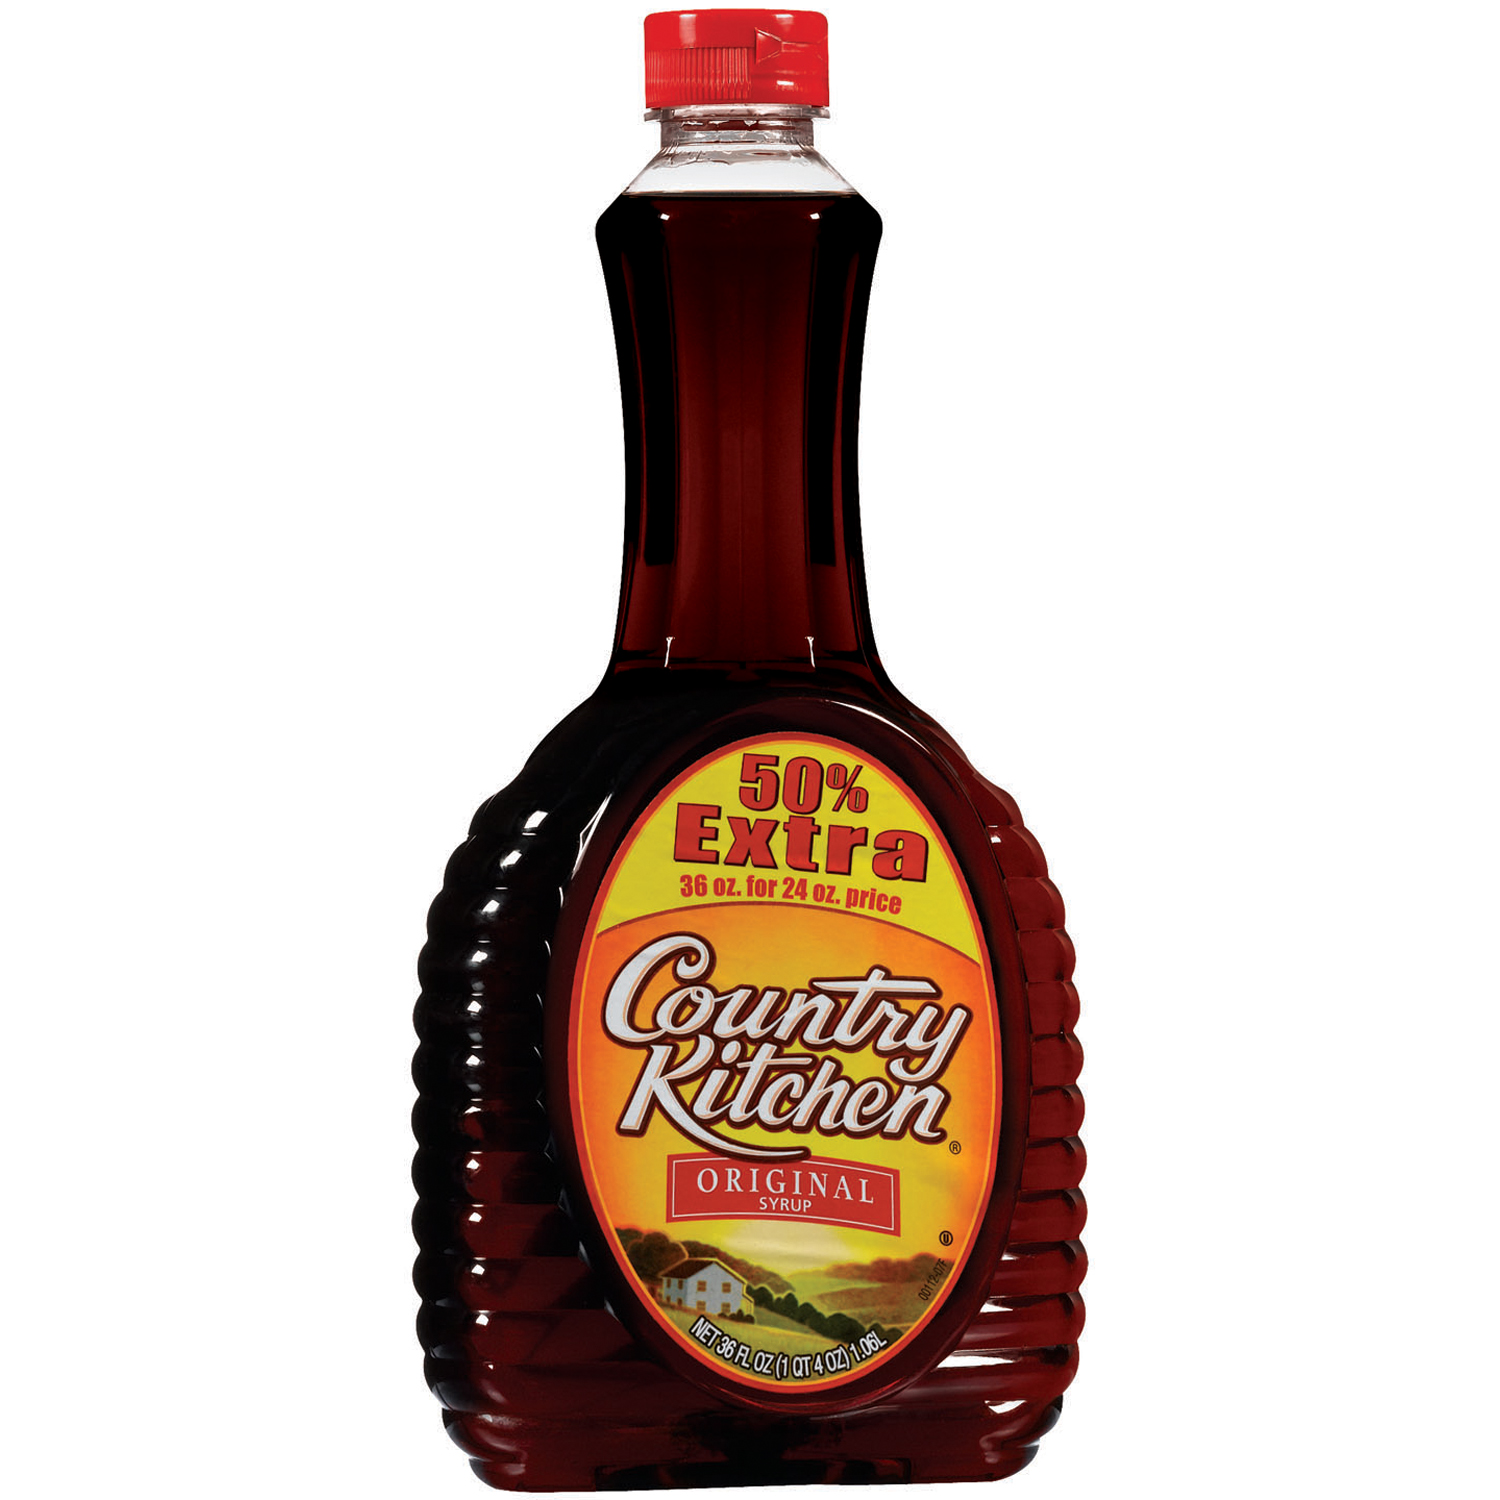 Country Kitchen Regular Syrup 36 Fl Oz